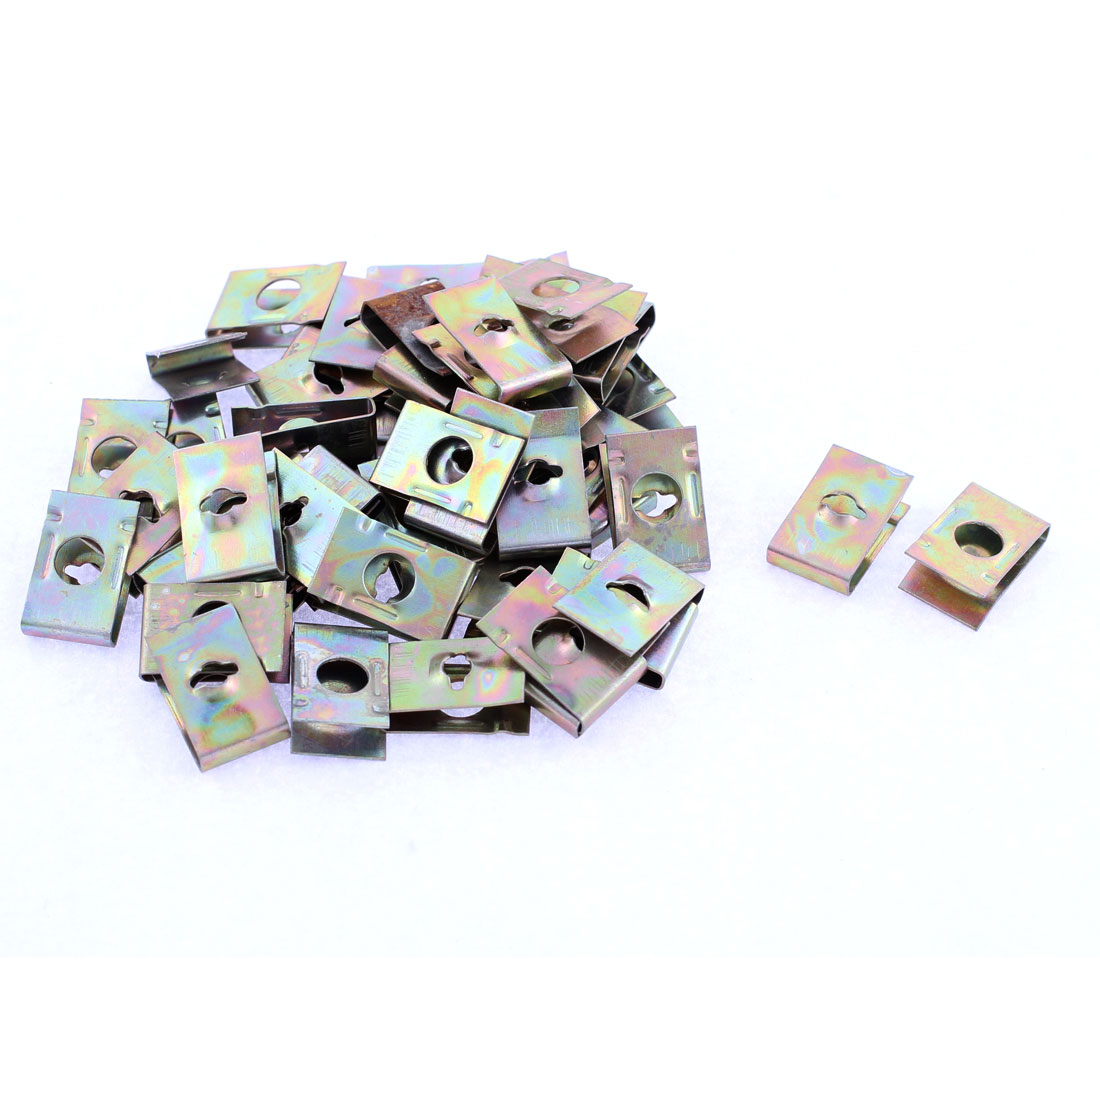 50 Pcs Bronze Tone Spring Metal Car Panel Fender Spire Screw U-Type Clips 17.7mm x 11mm